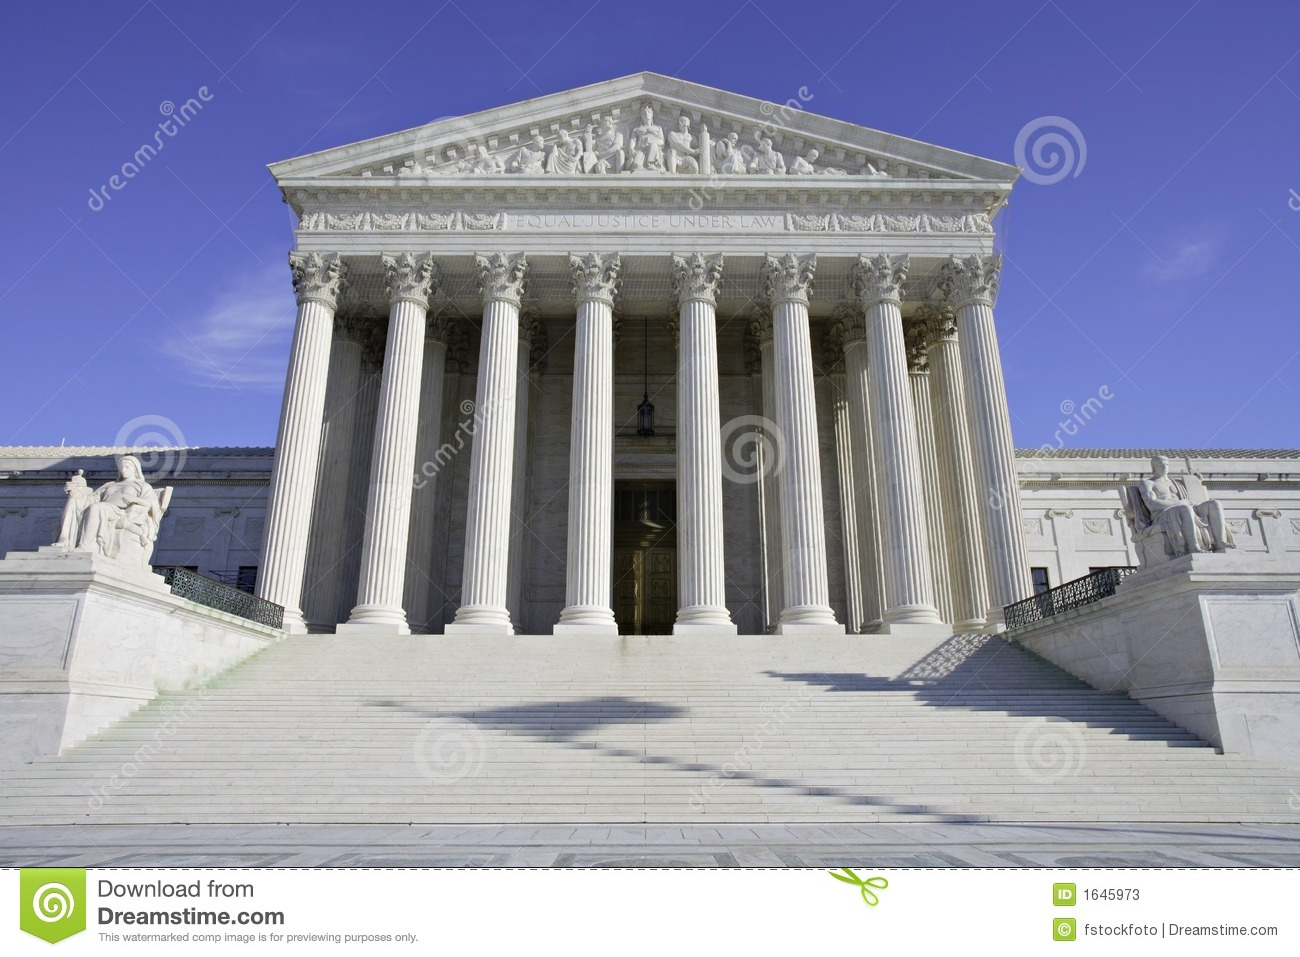 What role does the US Supreme Court play in enacting new laws?